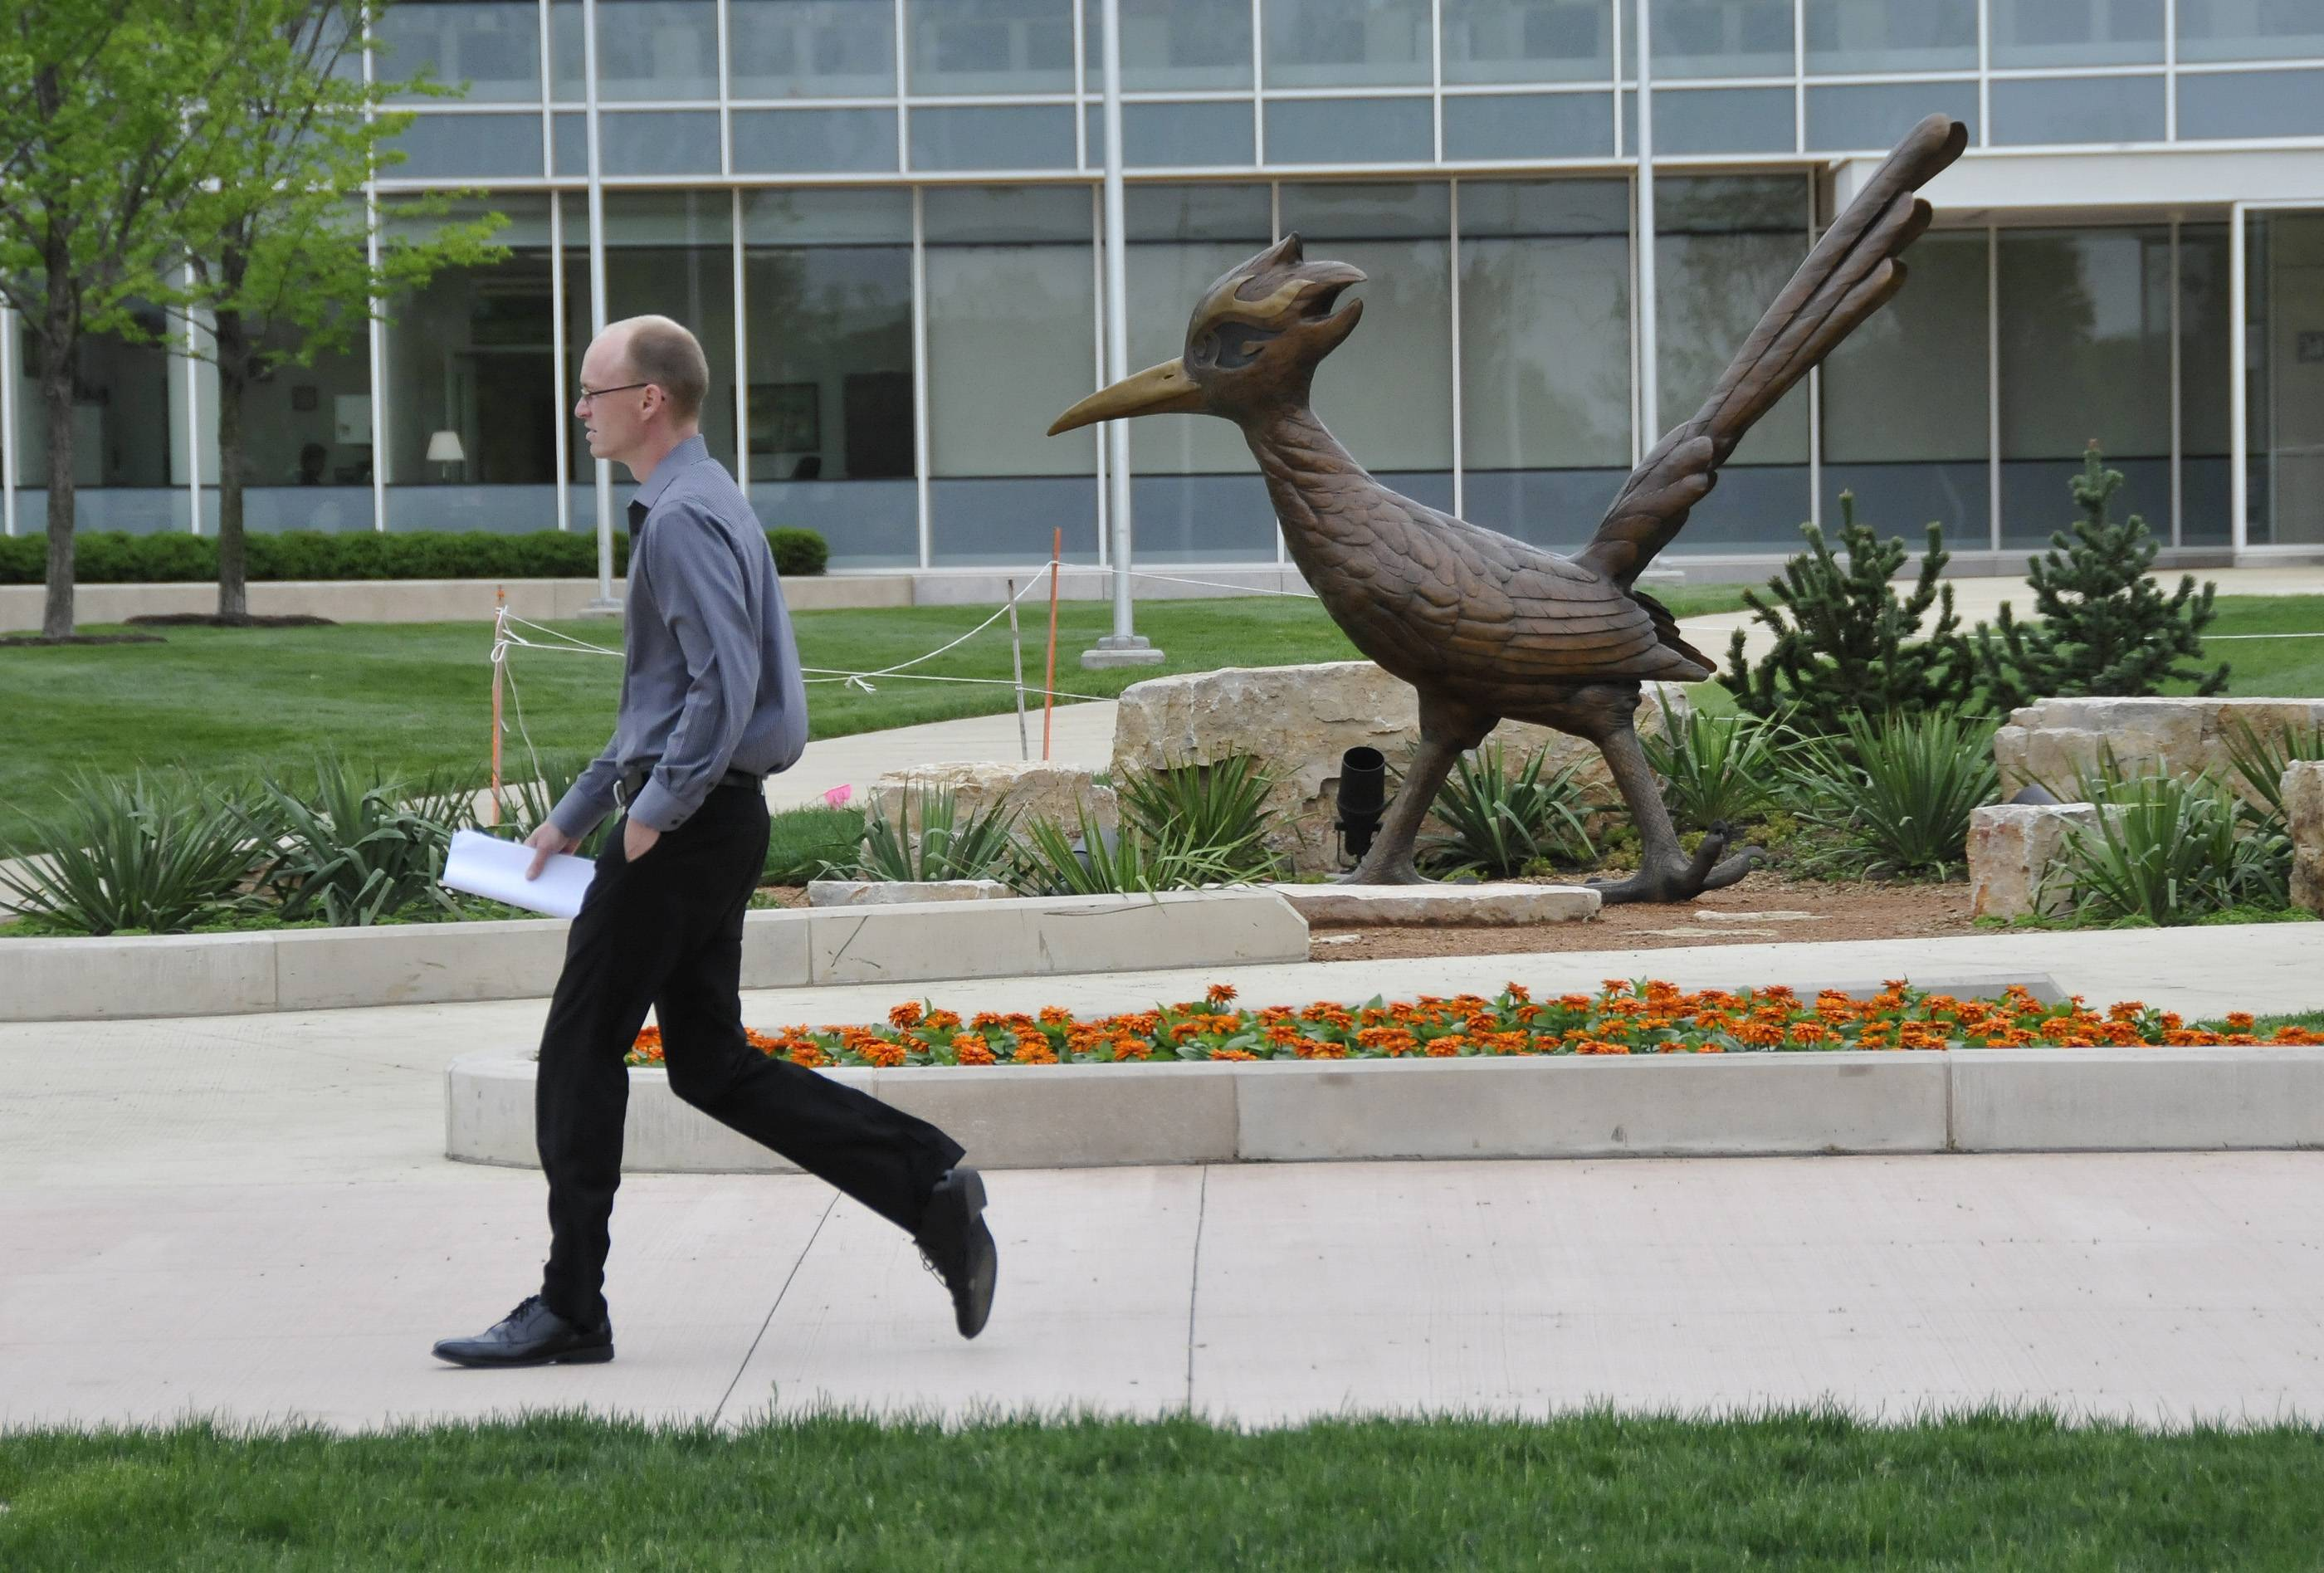 A man passes by a sculpture of a chaparral on the campus of College of DuPage. Travel reimbursements to COD trustees are raising eyebrows.